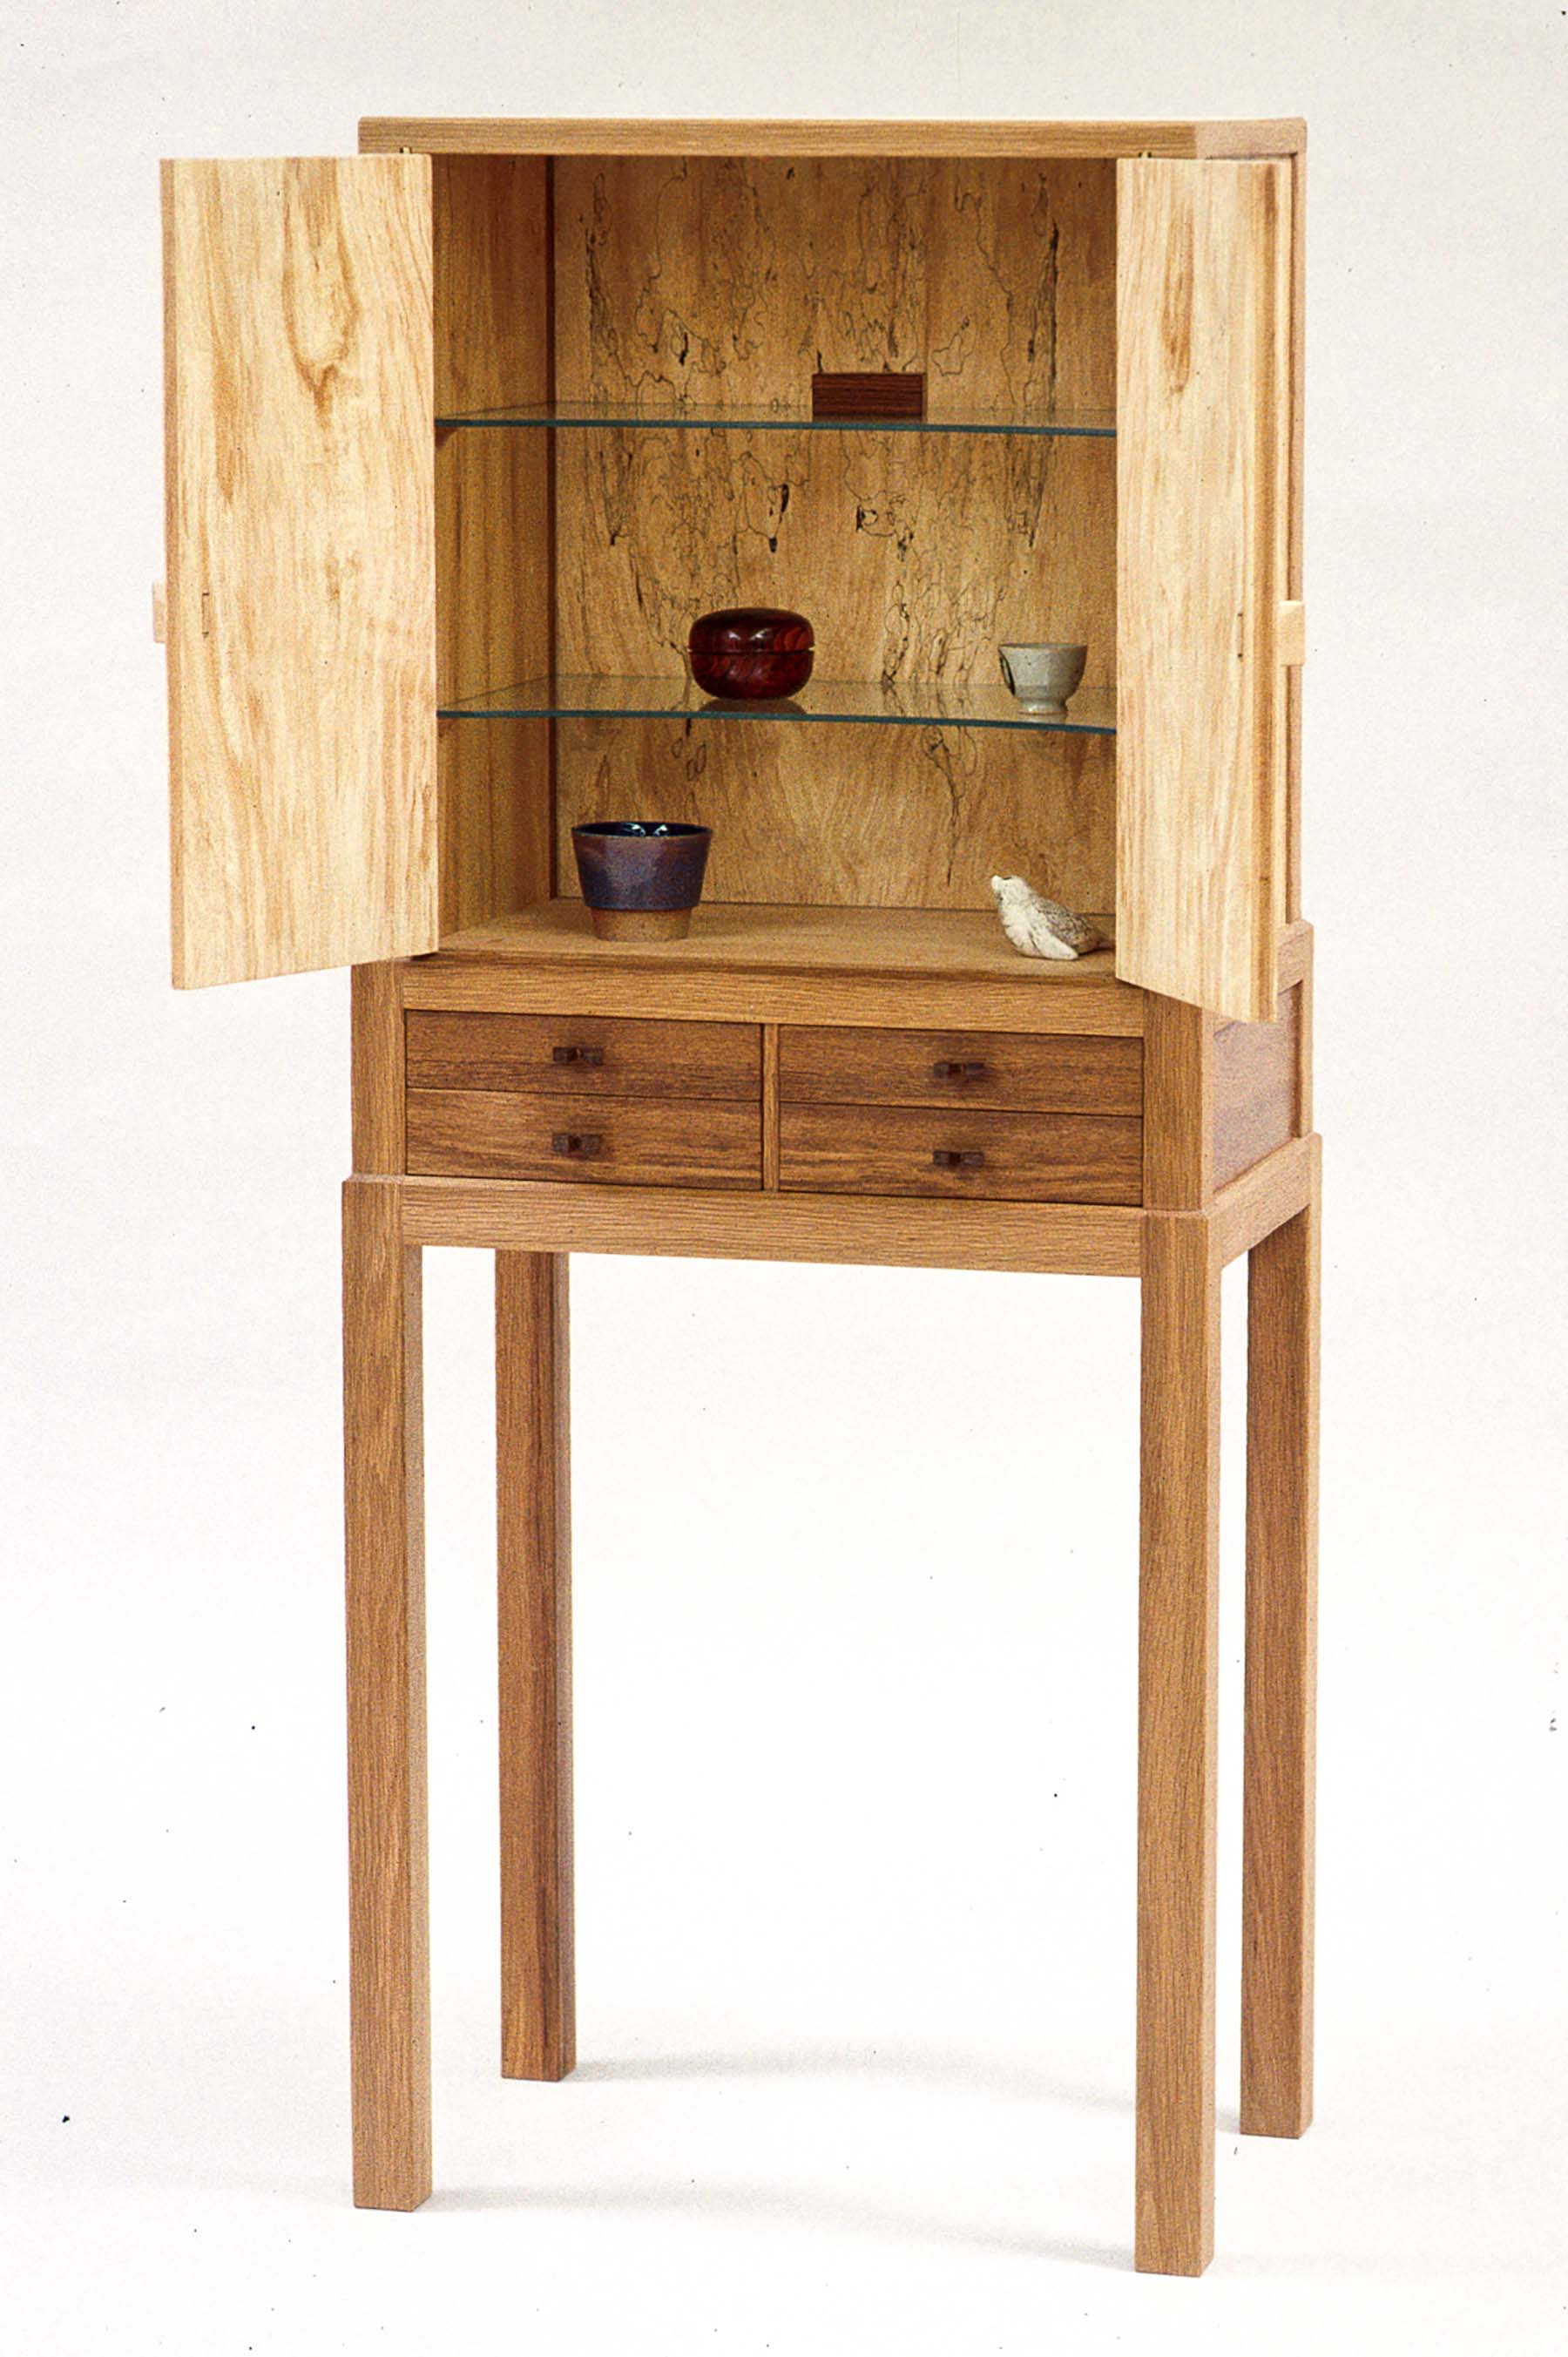 Stepped-Leg Cabinet